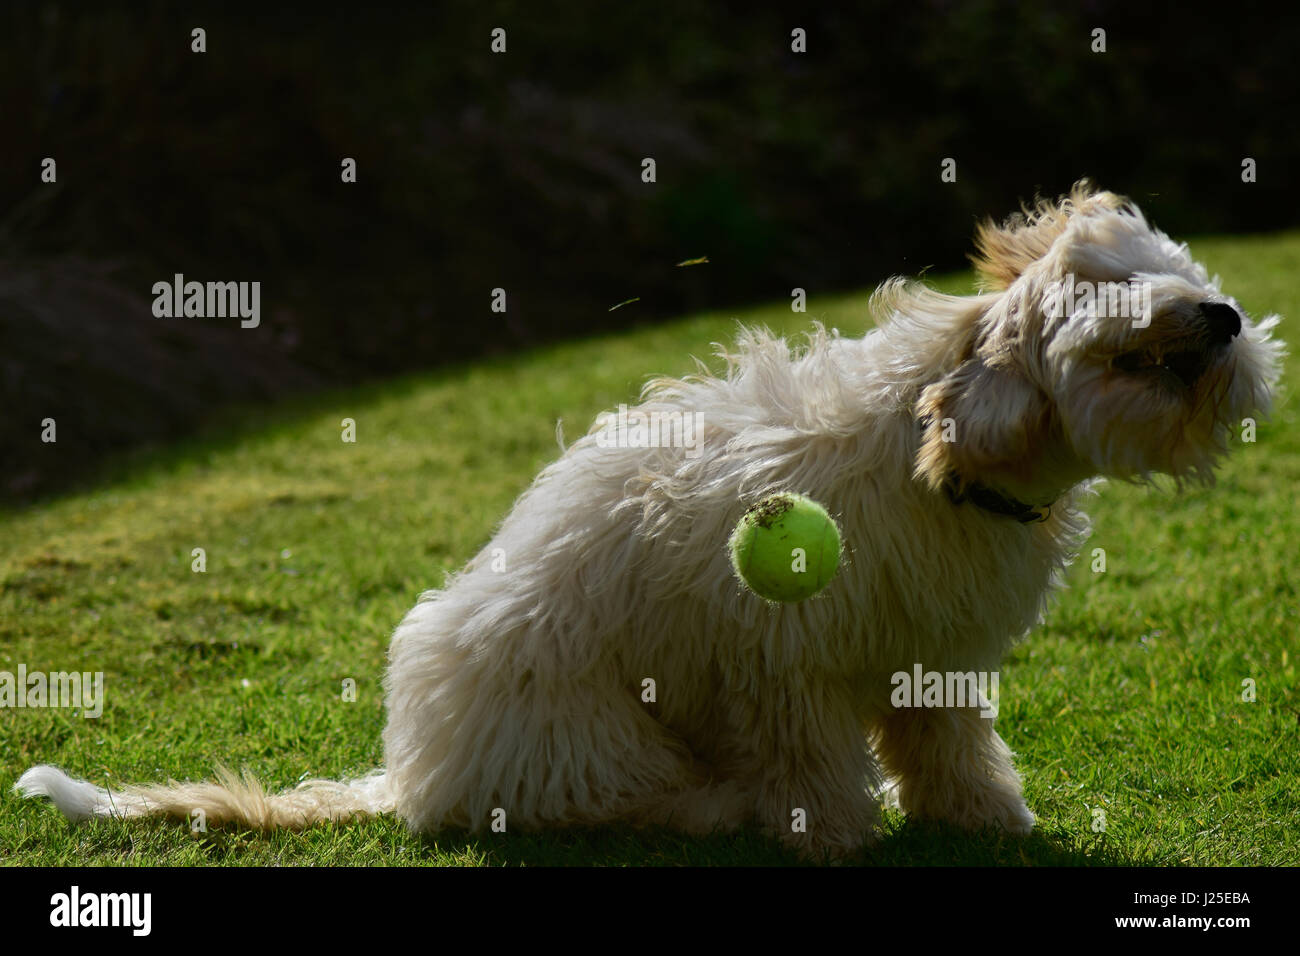 Cockerpoo shaking head in garden with tennis ball - Stock Image